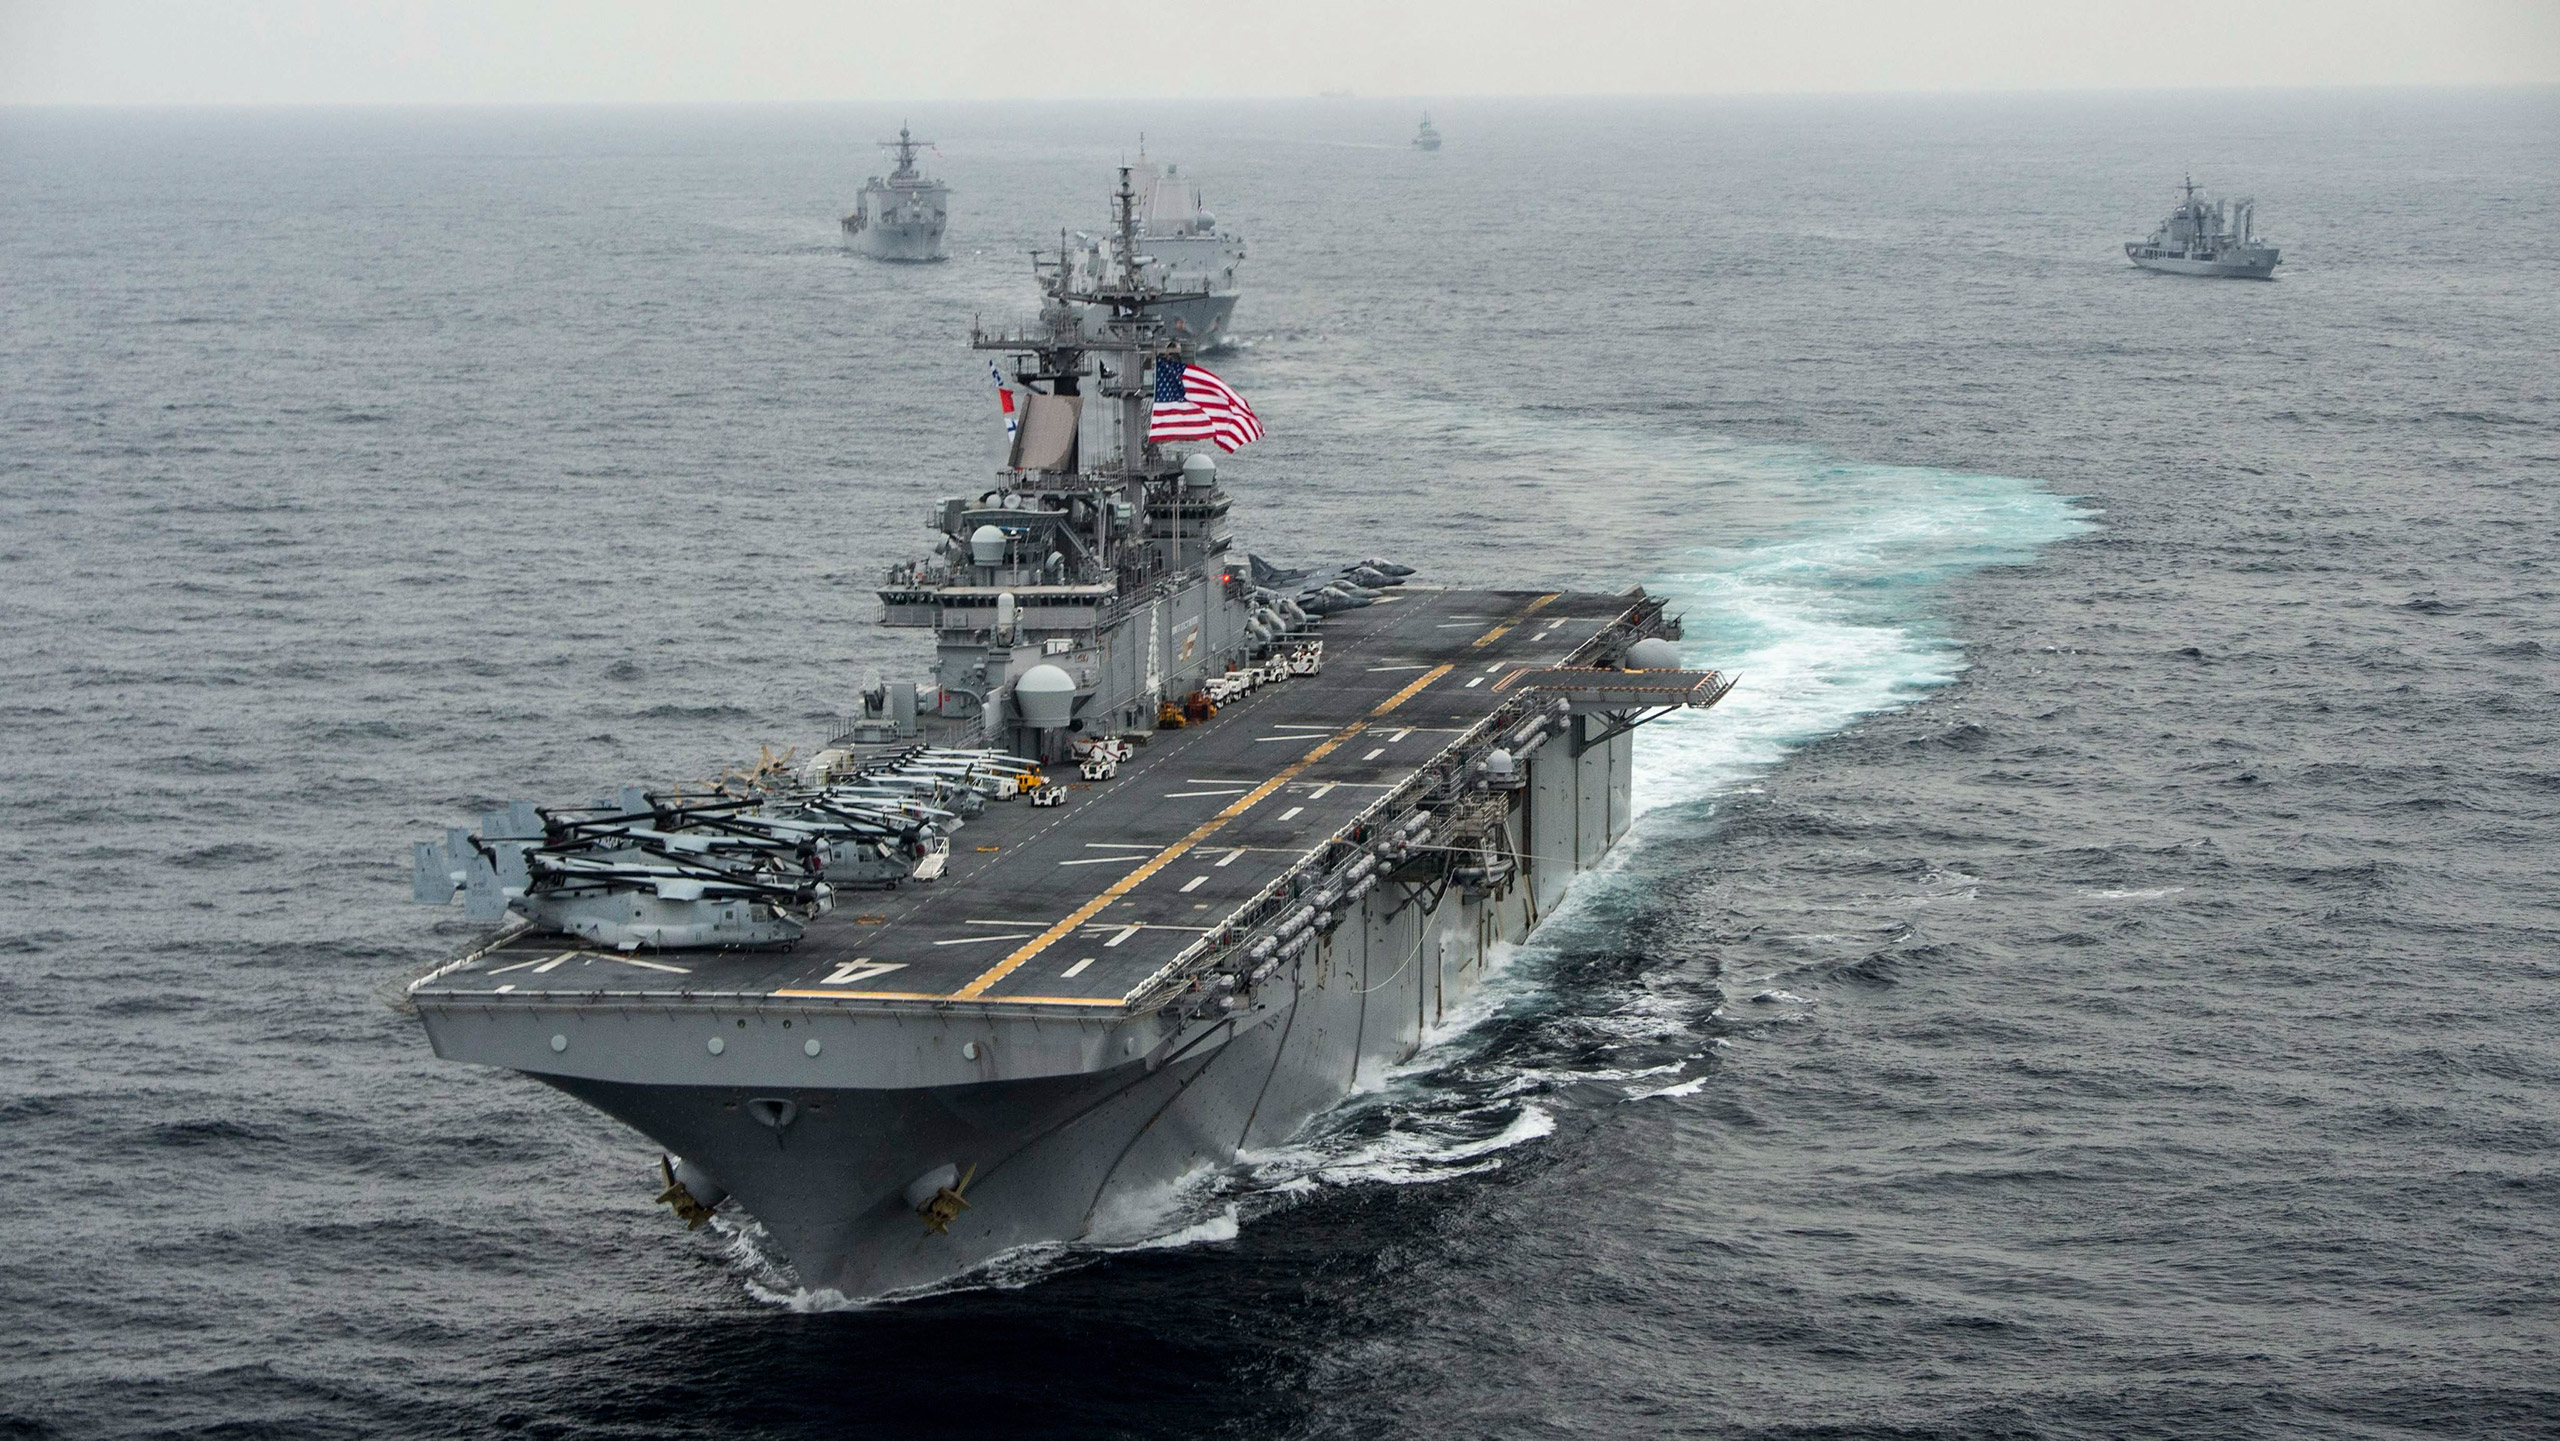 A handout photo provided by the U.S. Navy Media Content Operations on March 9, 2016, shows the amphibious assault ship USS Boxer (LHD 4) transiting the East Sea during Exercise Ssang Yong, in conjunction with the Republic of Korea Navy, one day earlier.